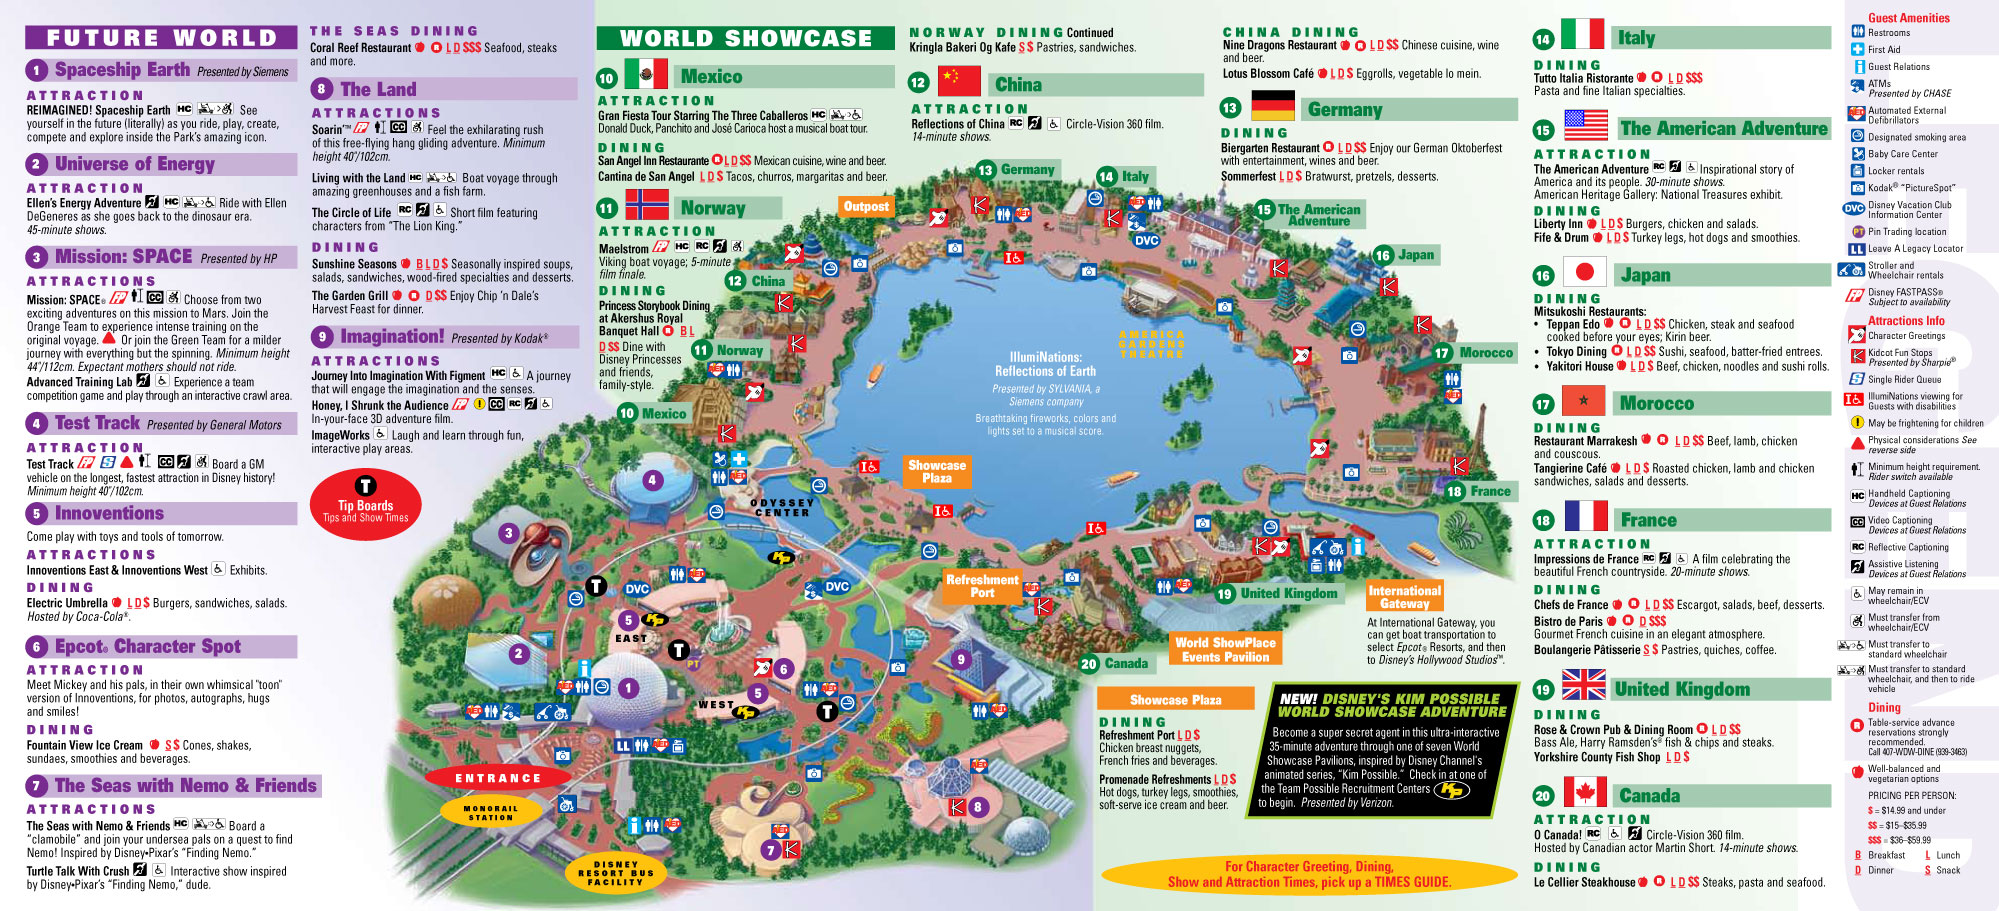 universal studios hollywood parking map with E S Mexico on All Walt Disney World Resort Theme Park Maps in addition Universal Studios Japan together with E s Mexico further Universal Studios Hollywood Trip Report May in addition Which Disneyland Resort Hotel Is Right For You.